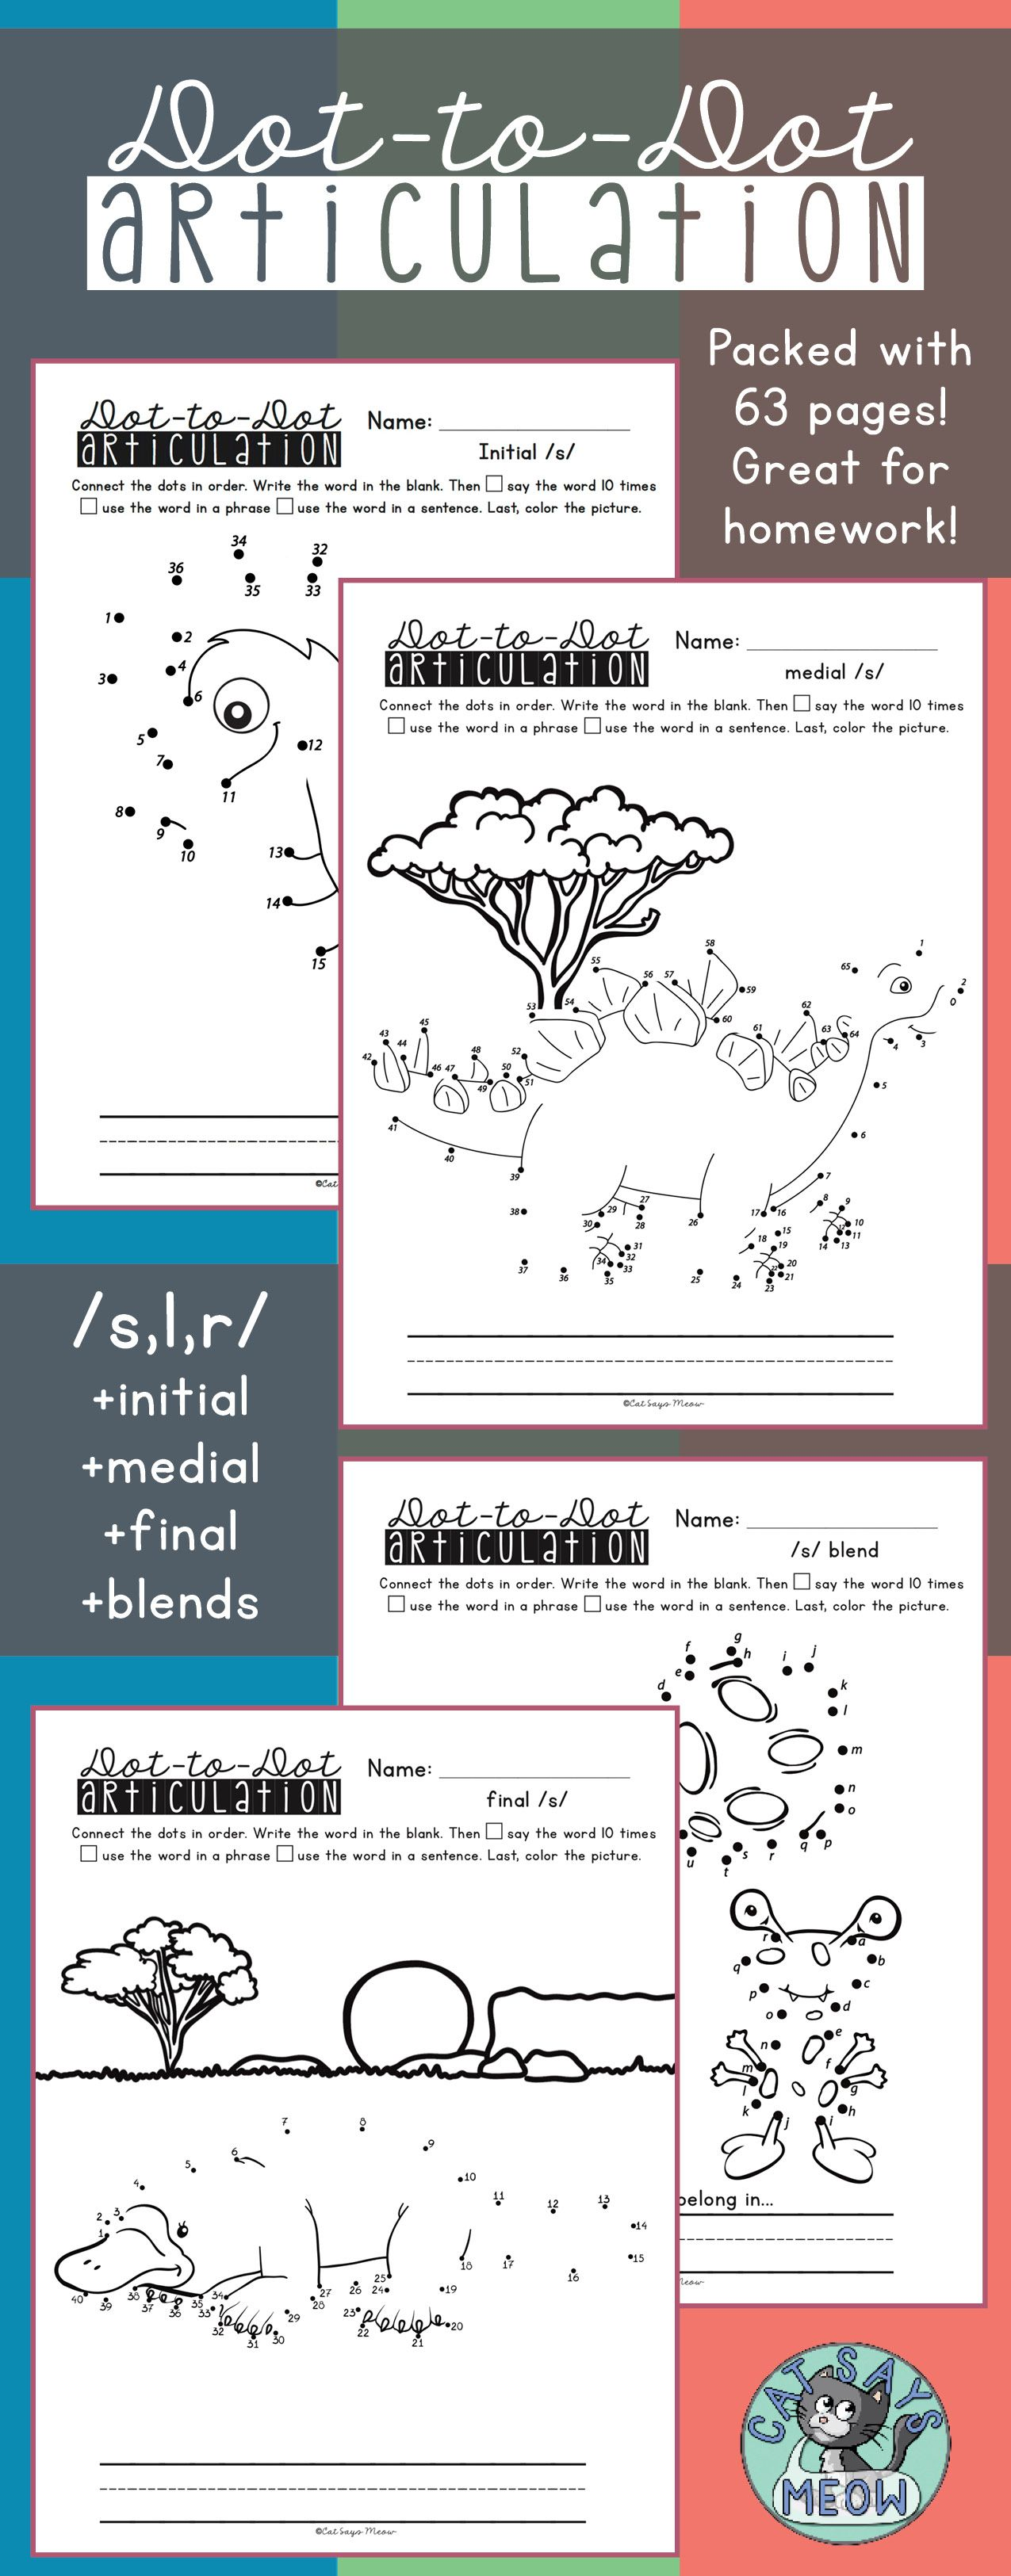 Articulation Homework Dot To Dot Worksheets For S L R